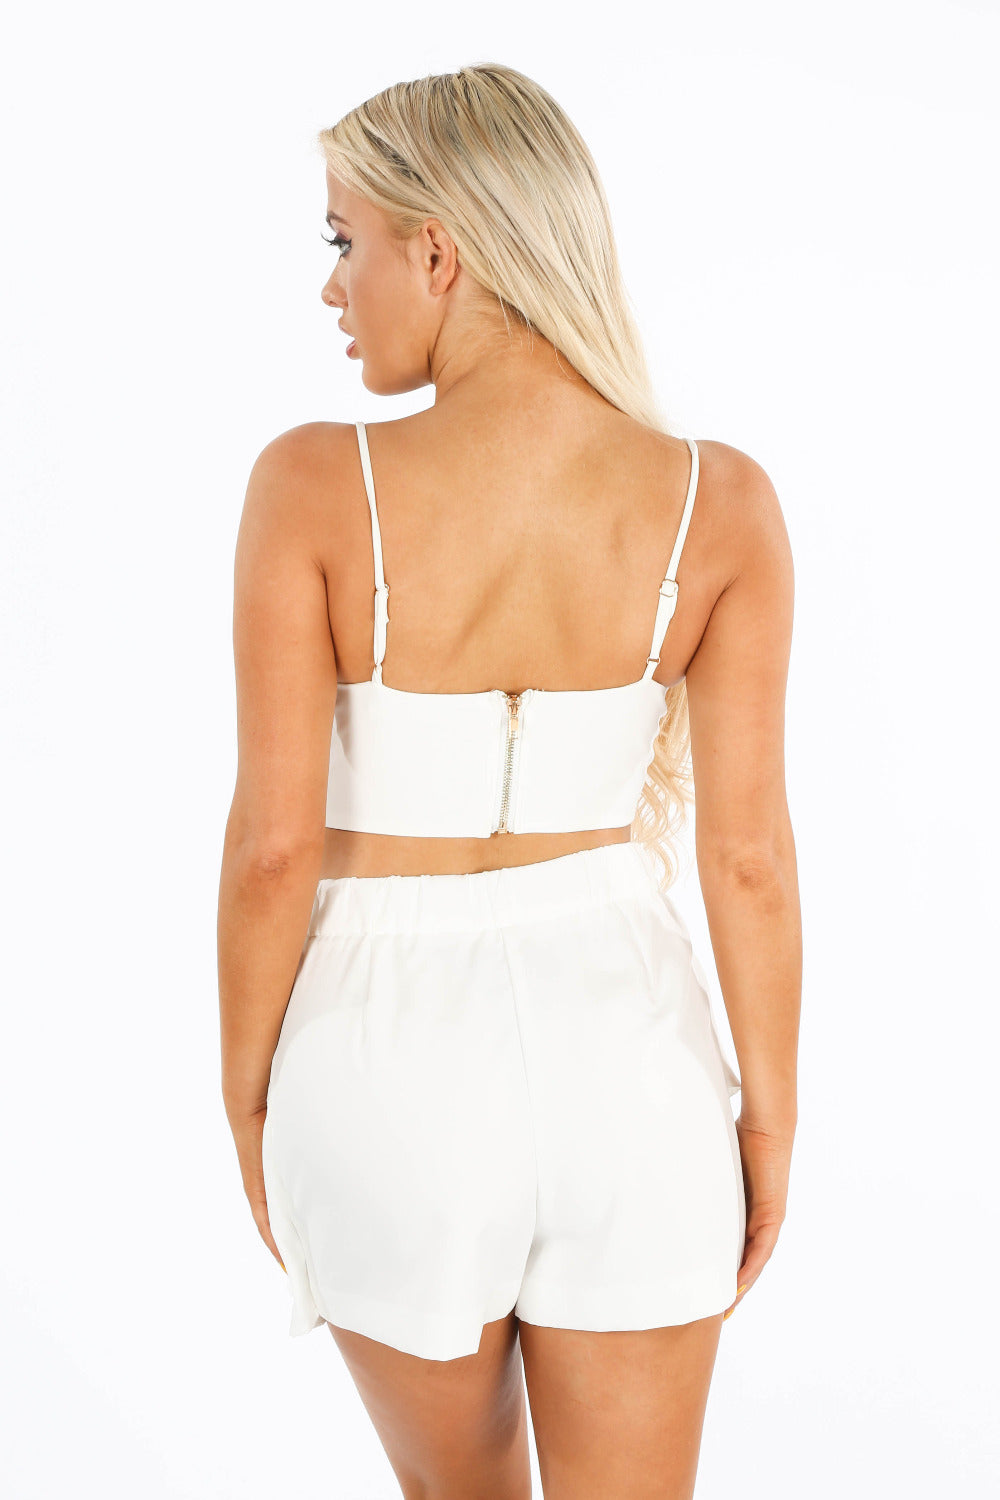 Plunge Front Bustier Bralet In White